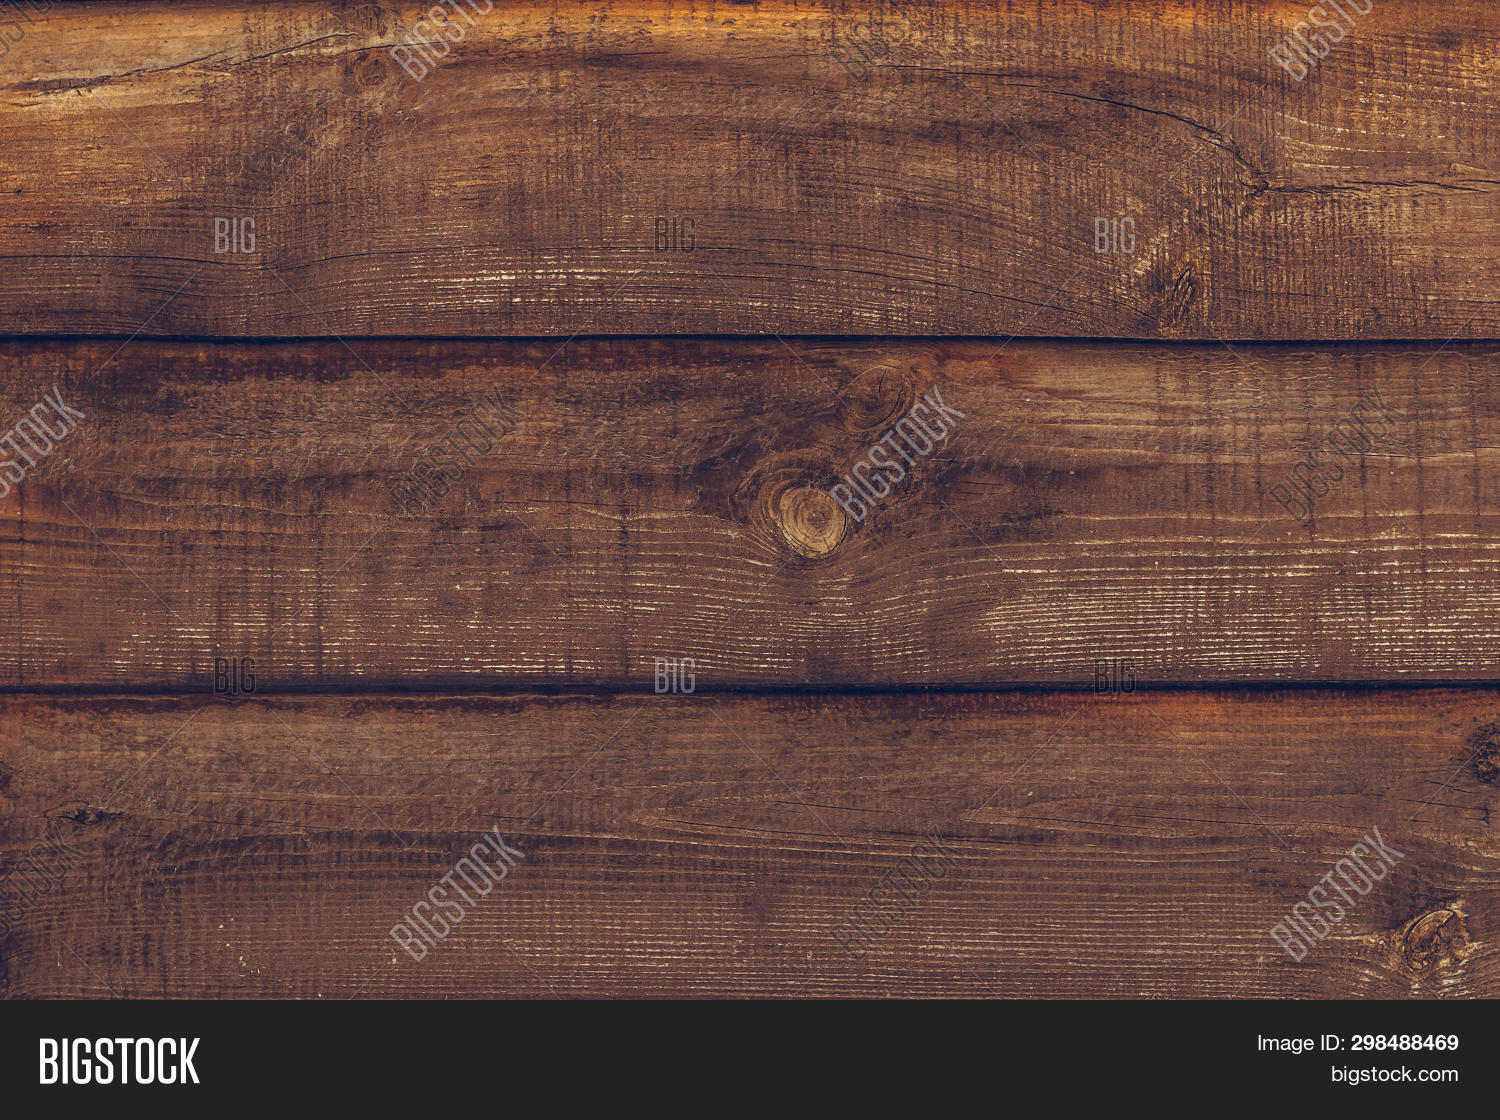 Vintage Wooden Texture Of Board. Grunge Wood Wall Pattern Of Fence. Old Wood Dark Brown Background T